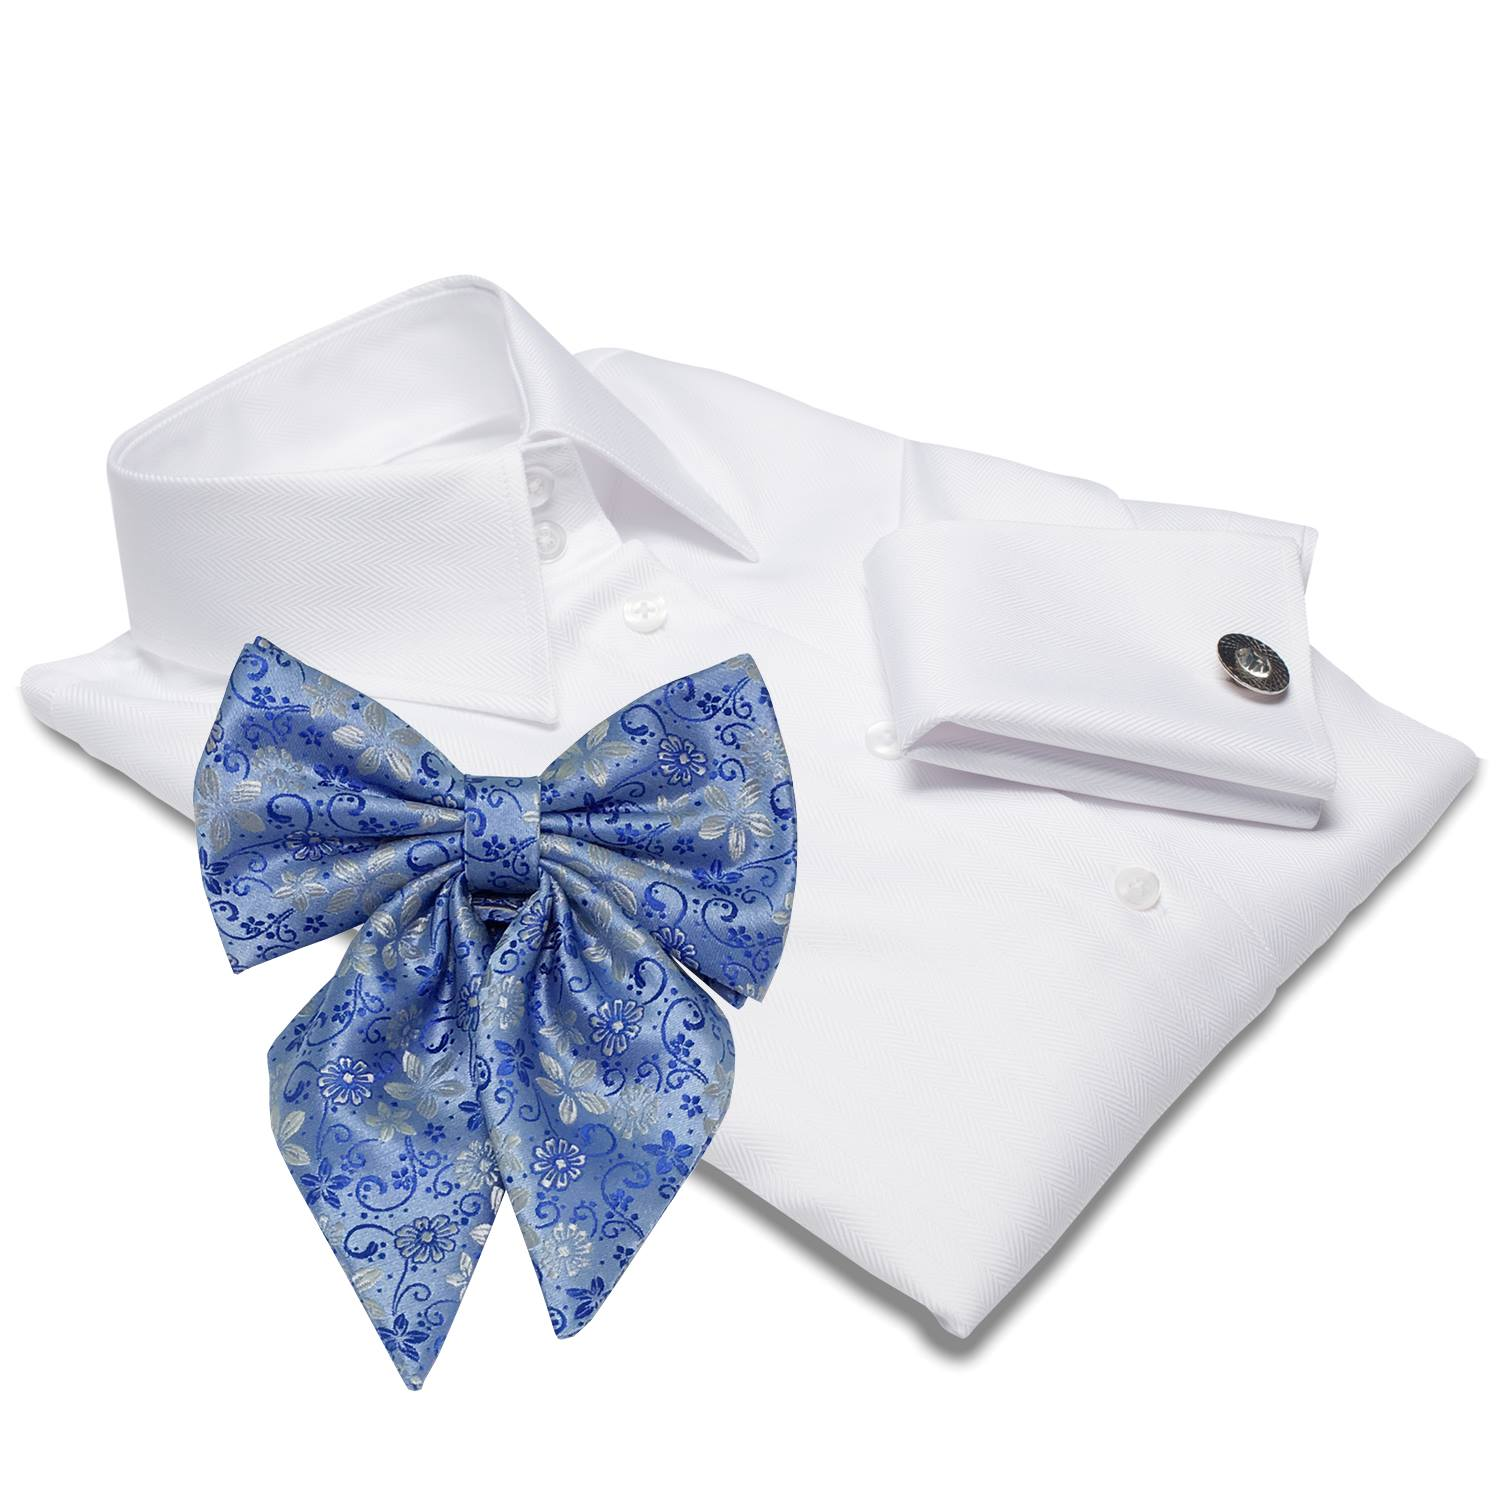 VENICE white dress shirt + BOW TIE + CUFFLINKS